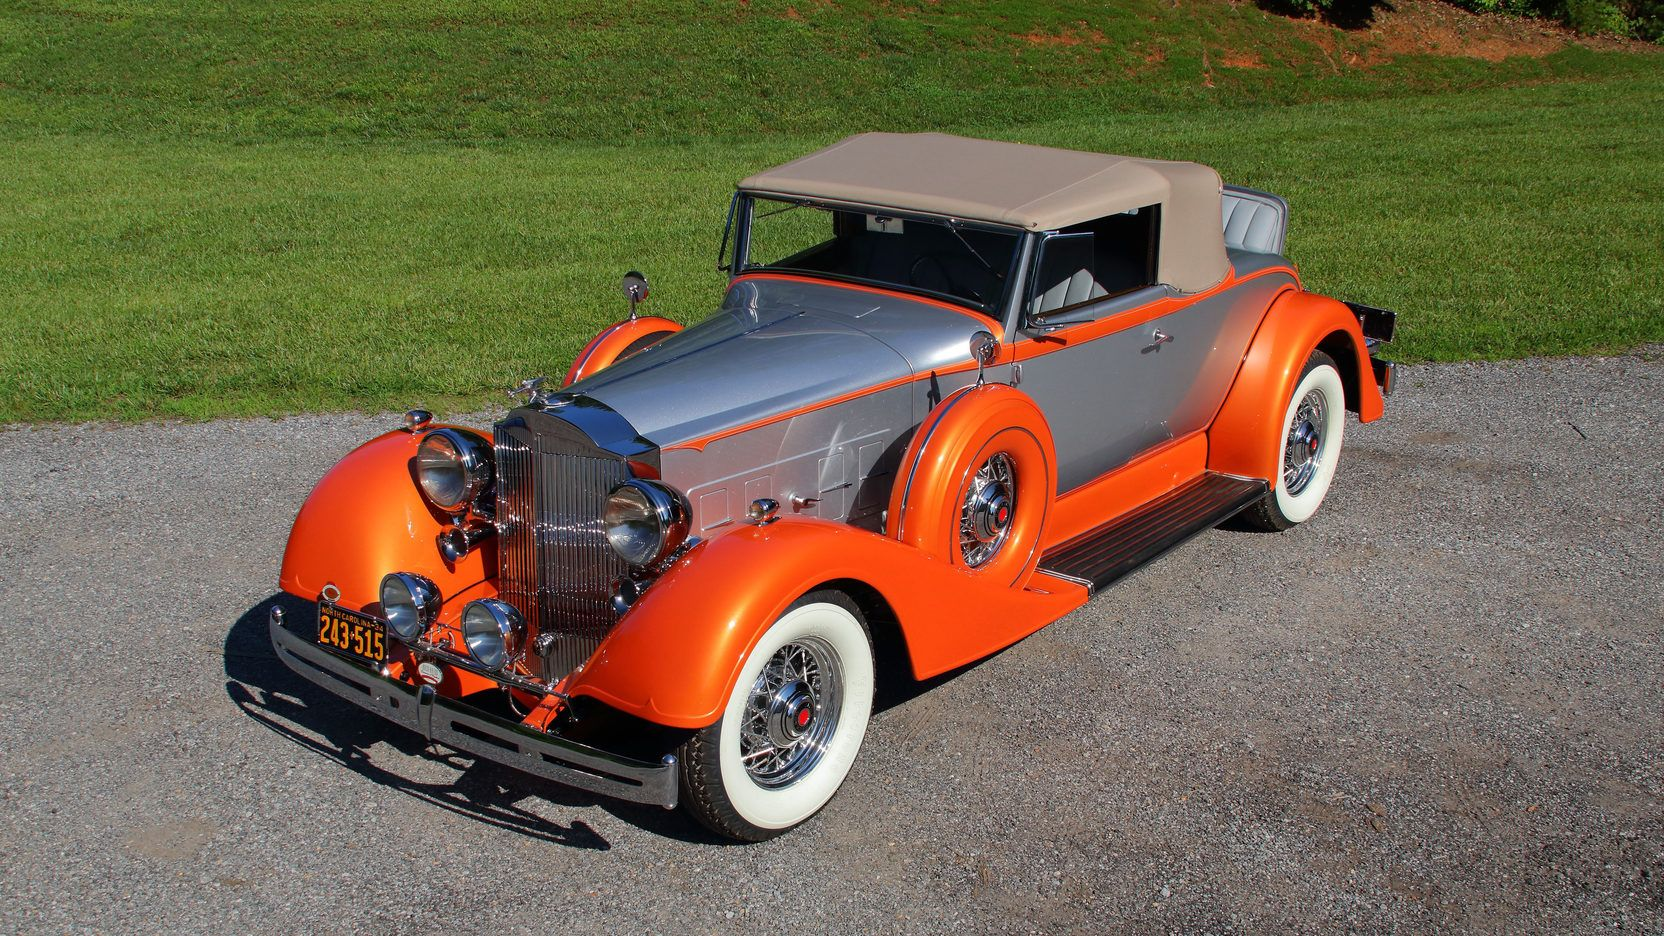 1934 Packard Eight 1101 Coupe Roadster presented as Lot S71 at ...